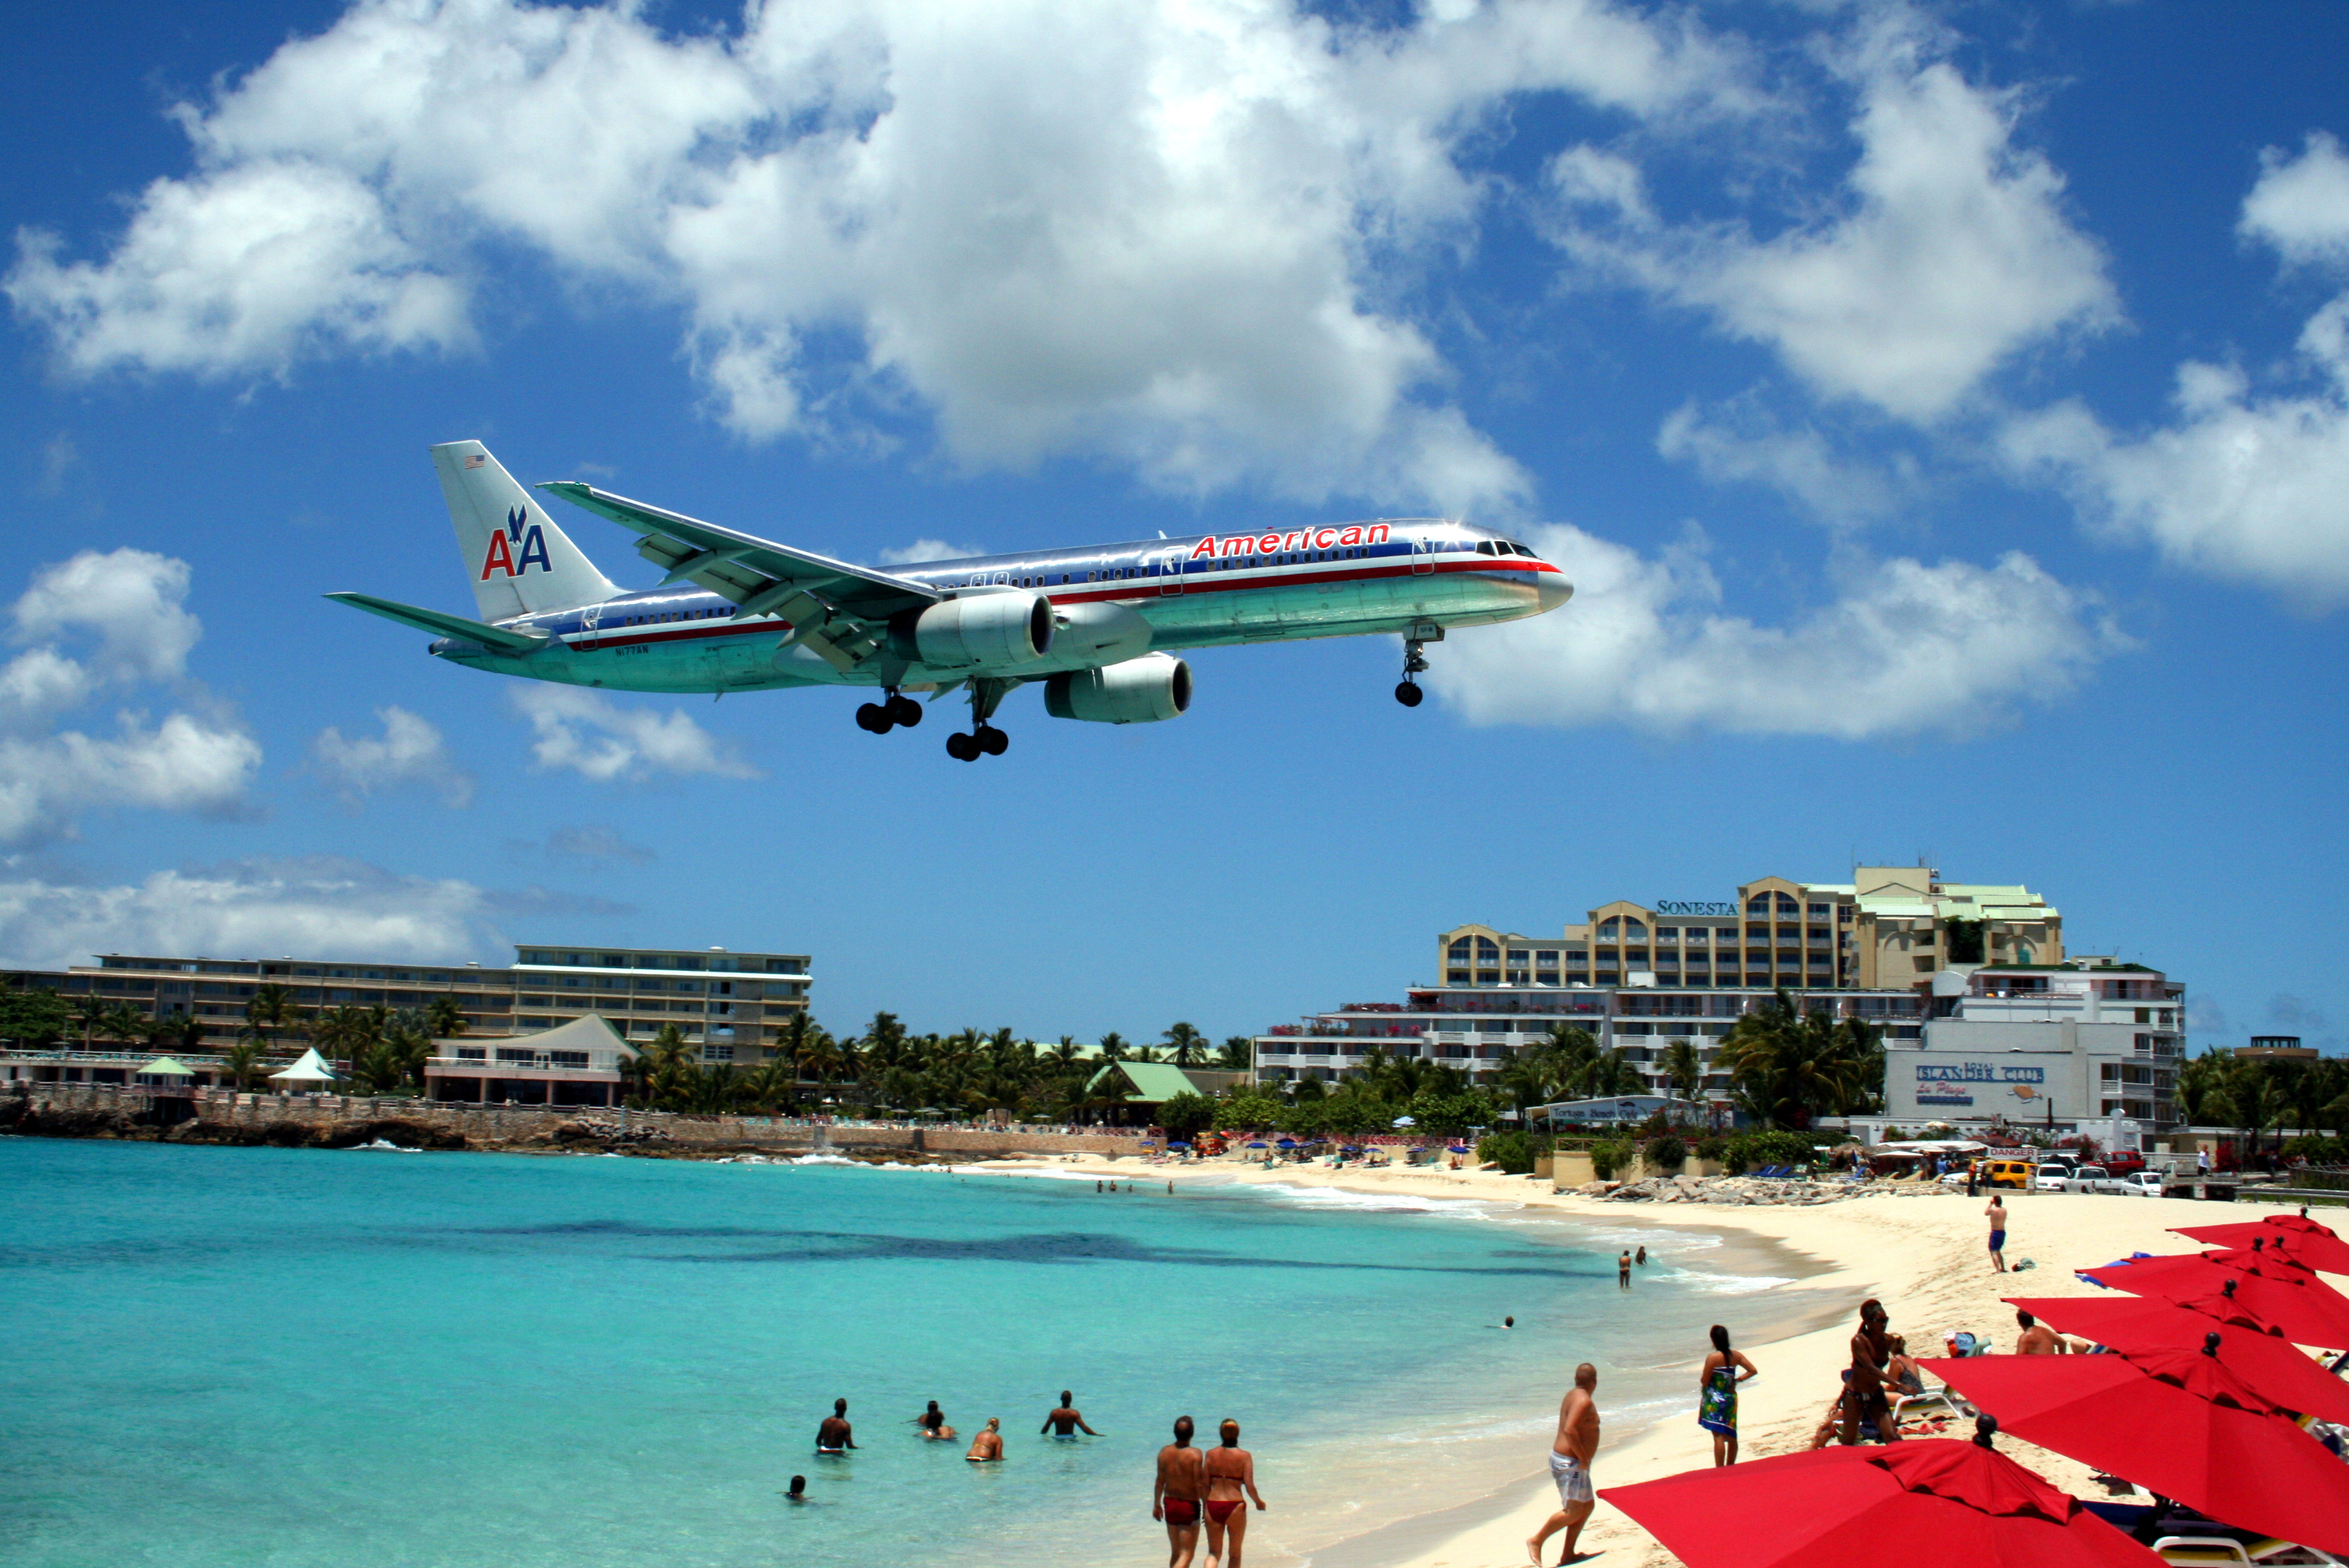 https://upload.wikimedia.org/wikipedia/commons/e/ea/American_757_on_final_approach_at_St_Maarten_Airport.jpg